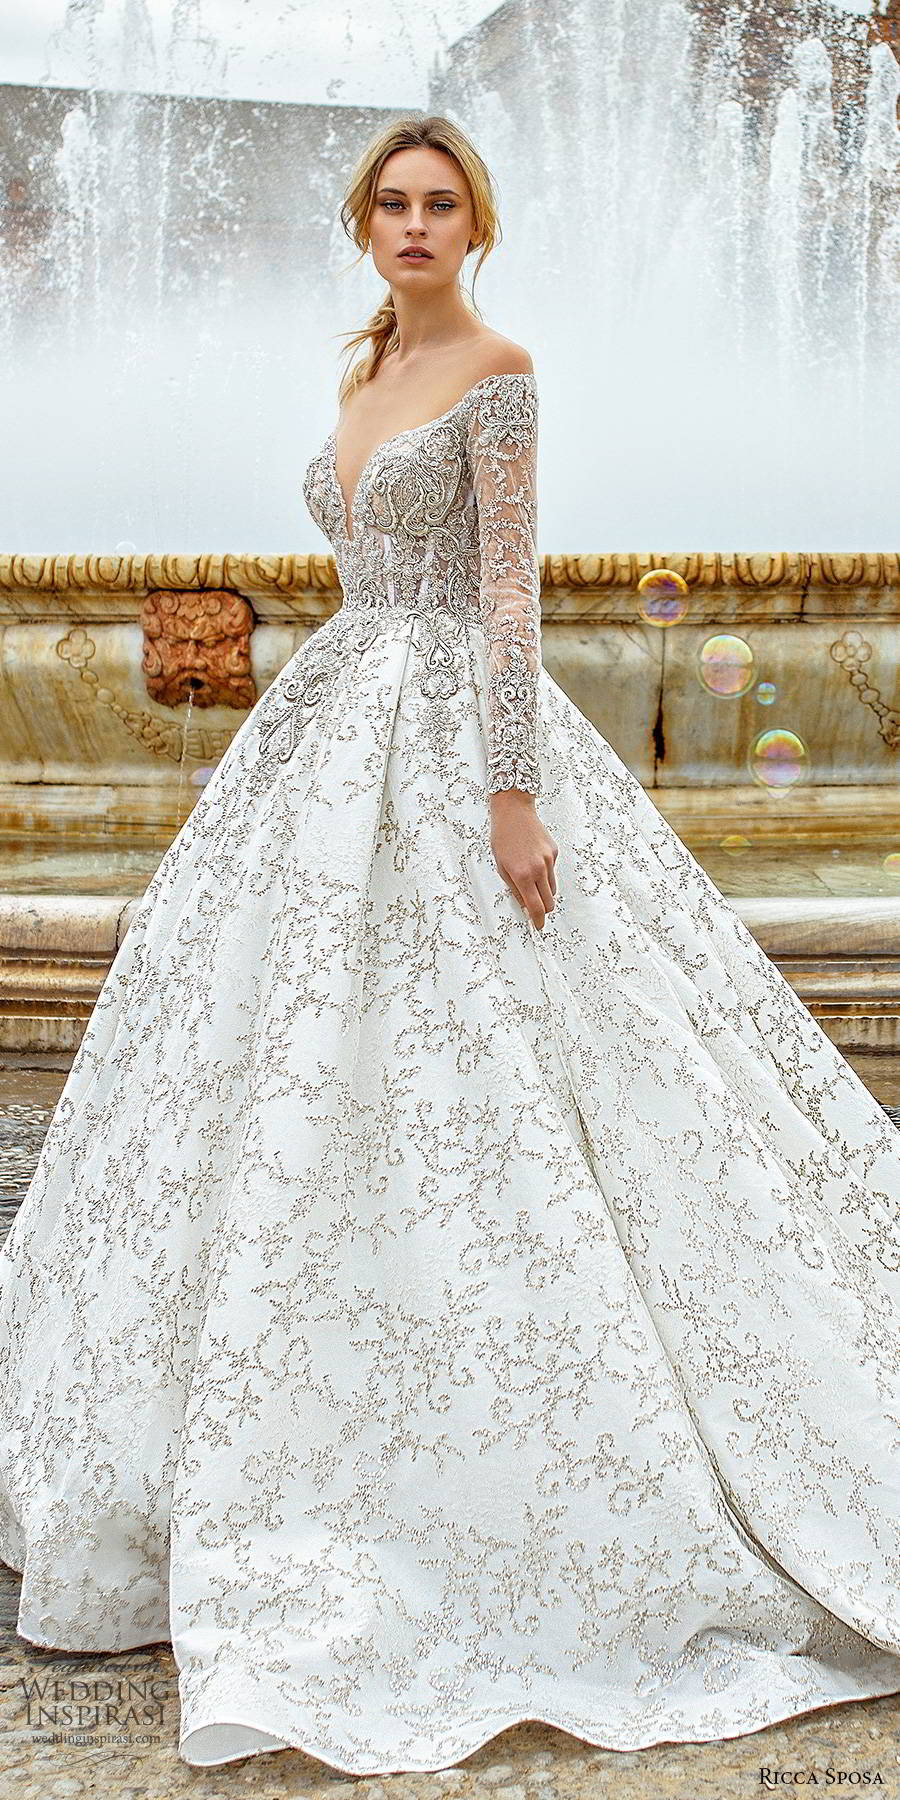 ricca sposa 2019 bridal sheer long sleeves off shoulder sweetheart neckline fully embellished elegant a line ball gown wedding dress v back cathedral train (8) mv